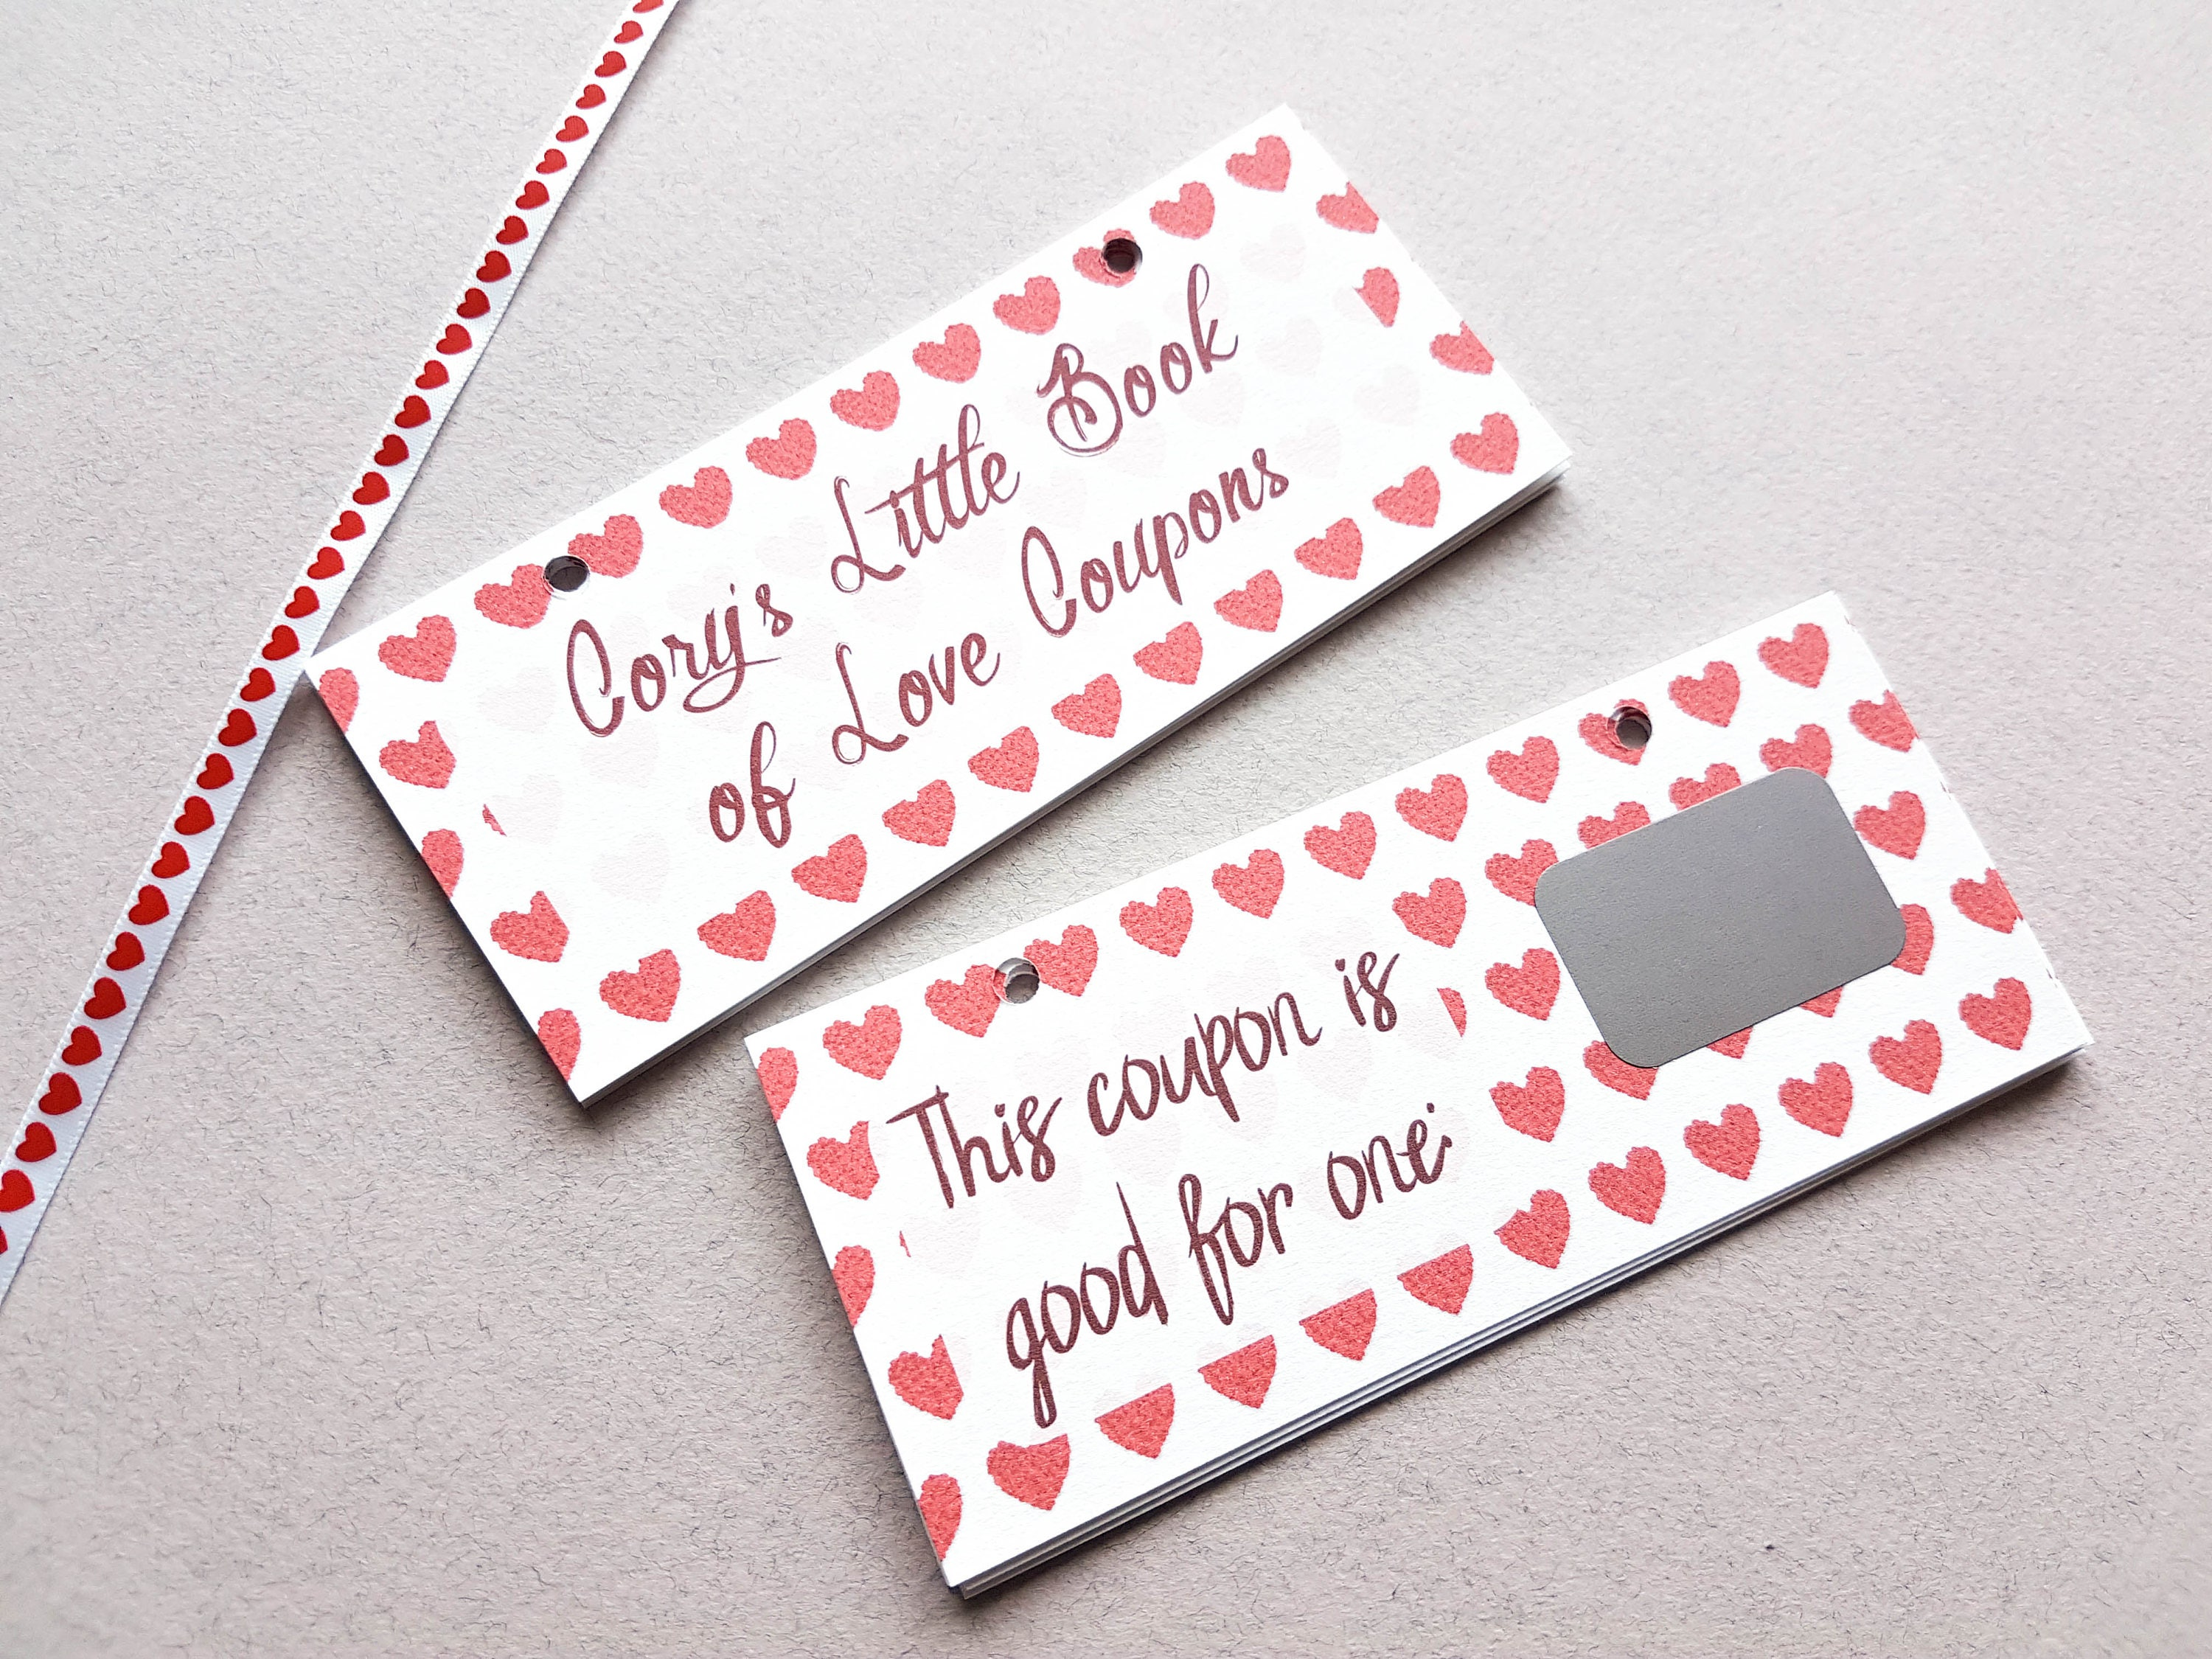 adult love coupons scratch off valentines gift voucher | etsy